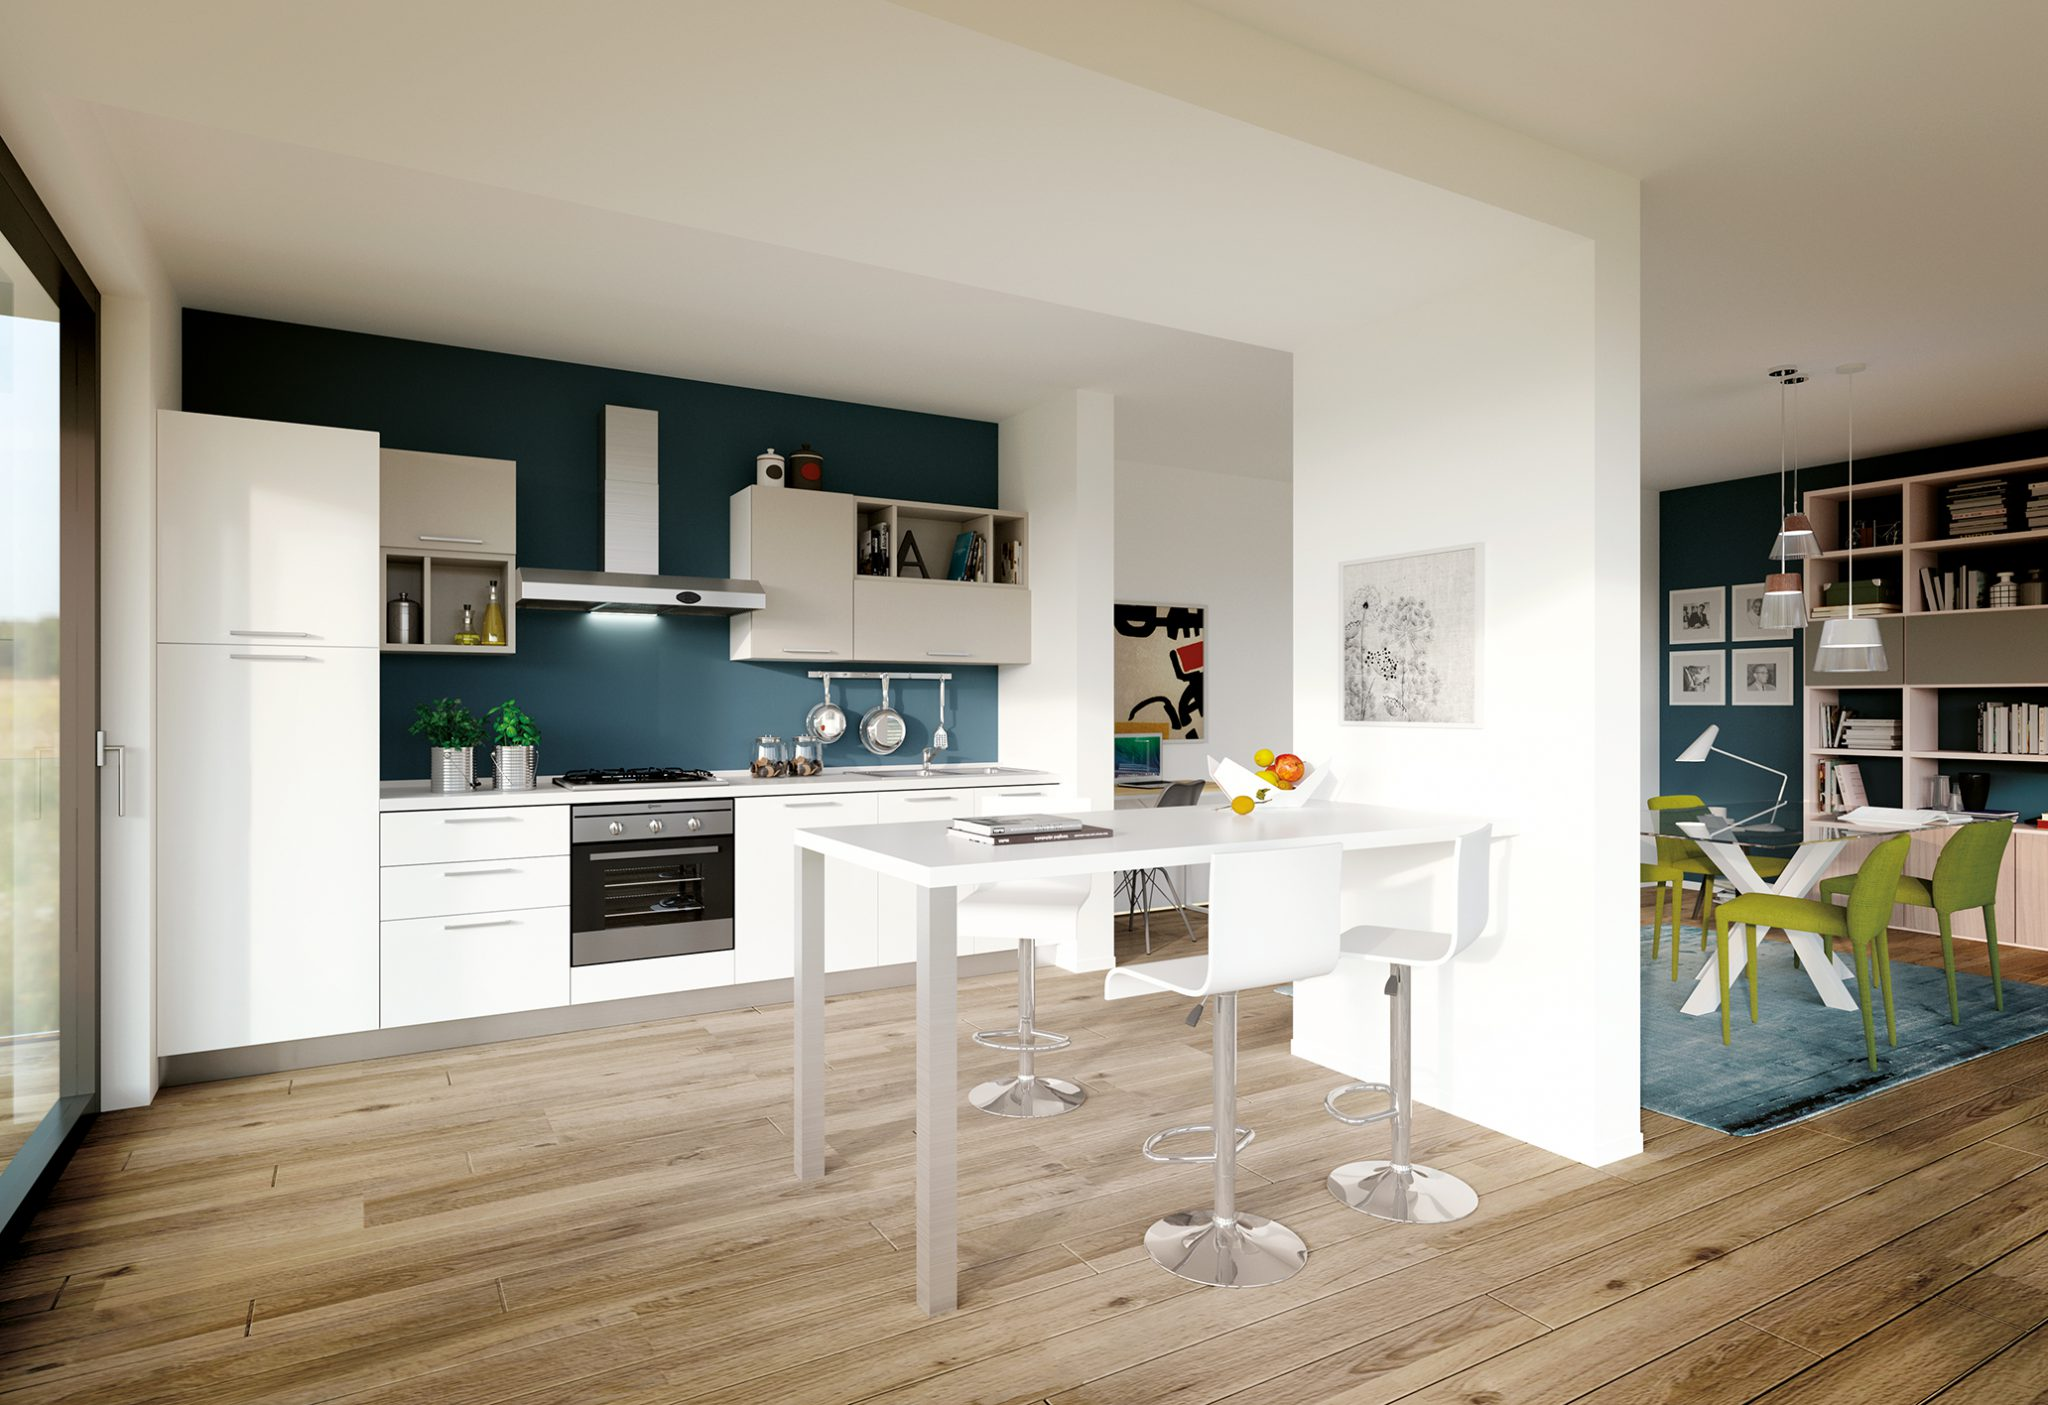 Cucina moderna design best layer slider with cucina moderna design awesome modello di cucina - Design cucine moderne ...